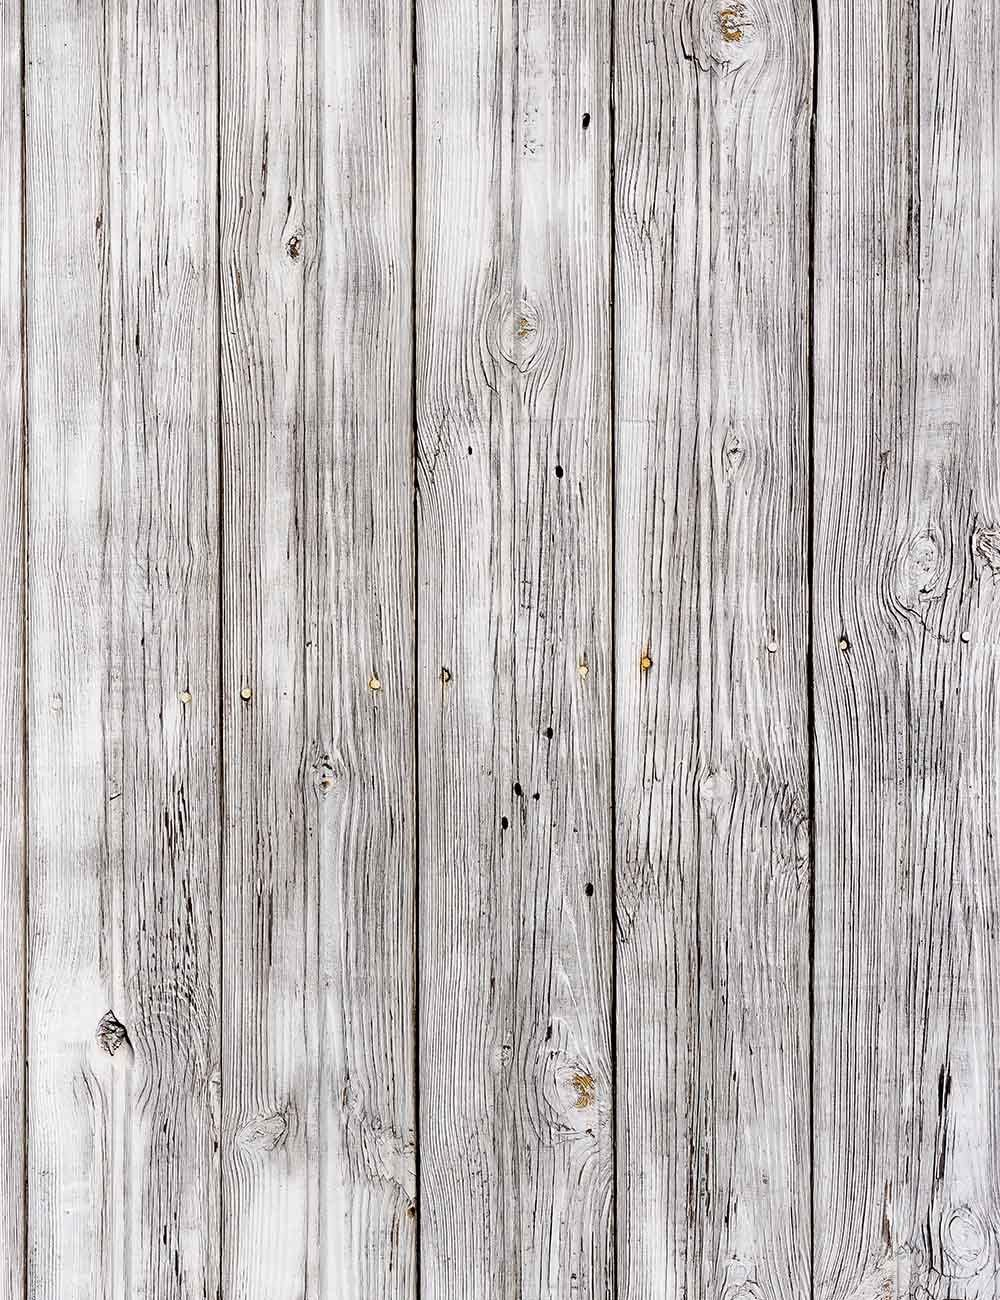 White Wood Texture. White Wood Texture With Natural Pattern Photography  Backdrop J 0683